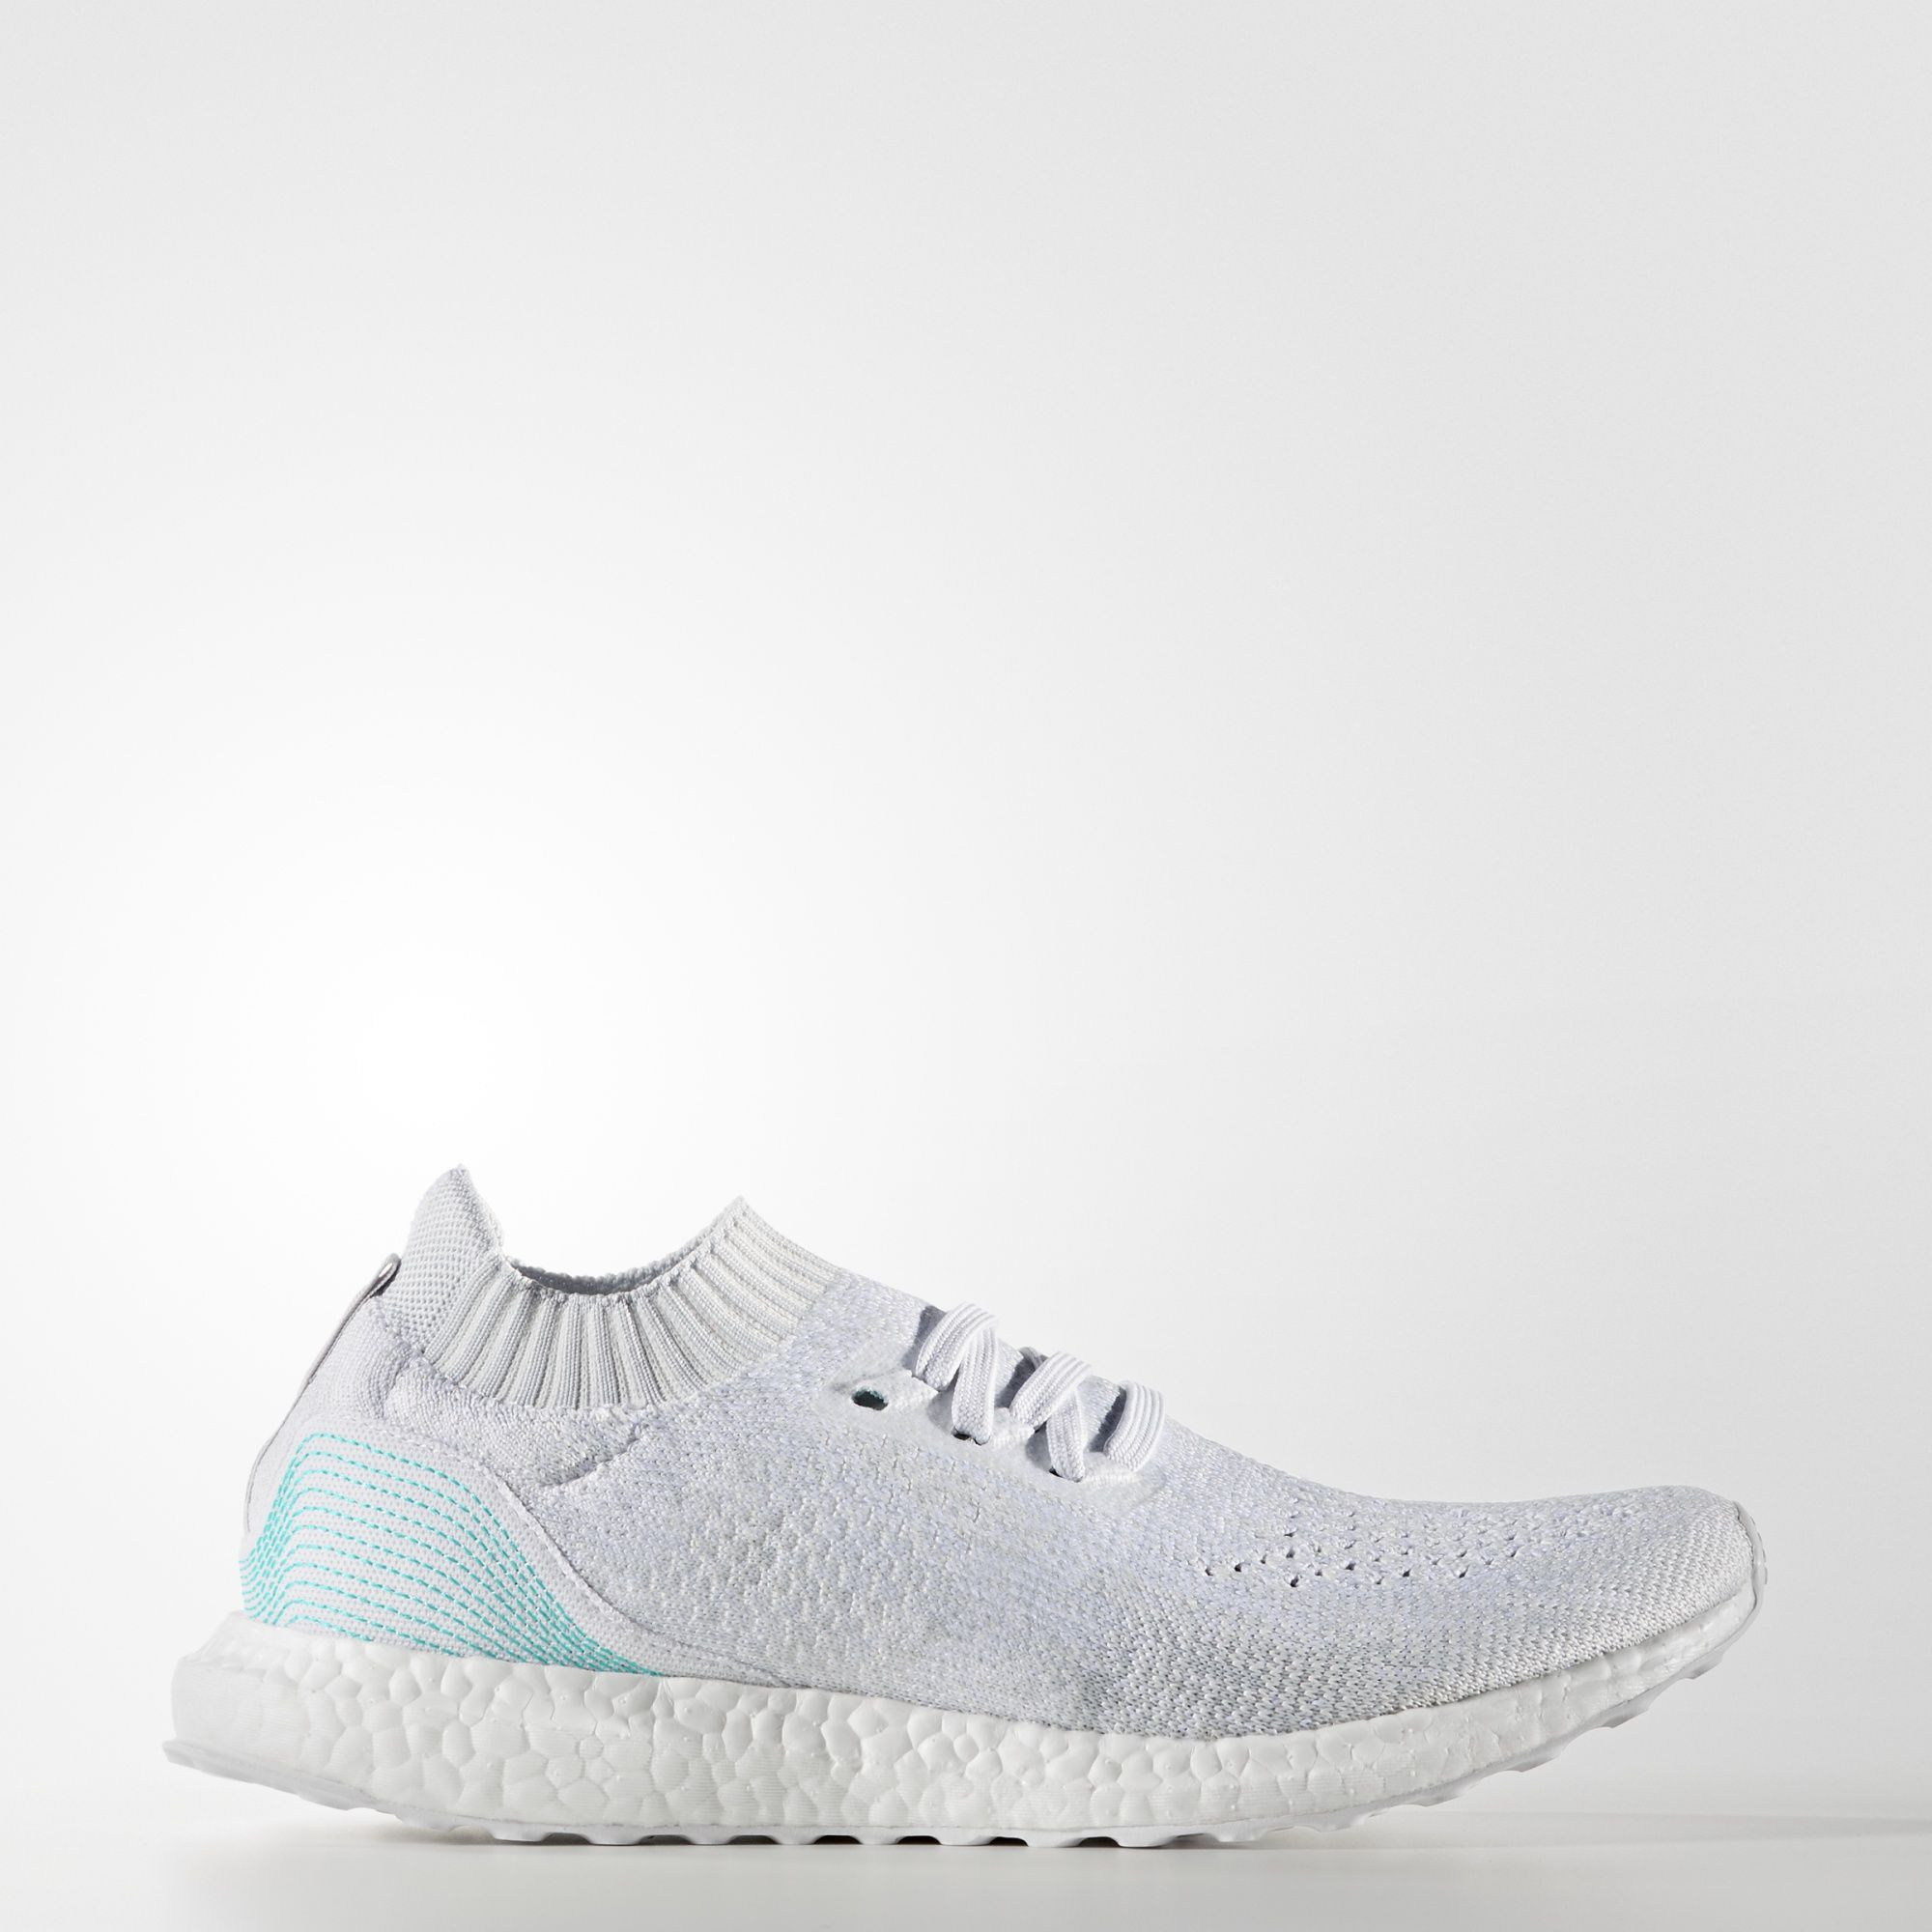 adidas - Ultra Boost Uncaged Ltd Shoes